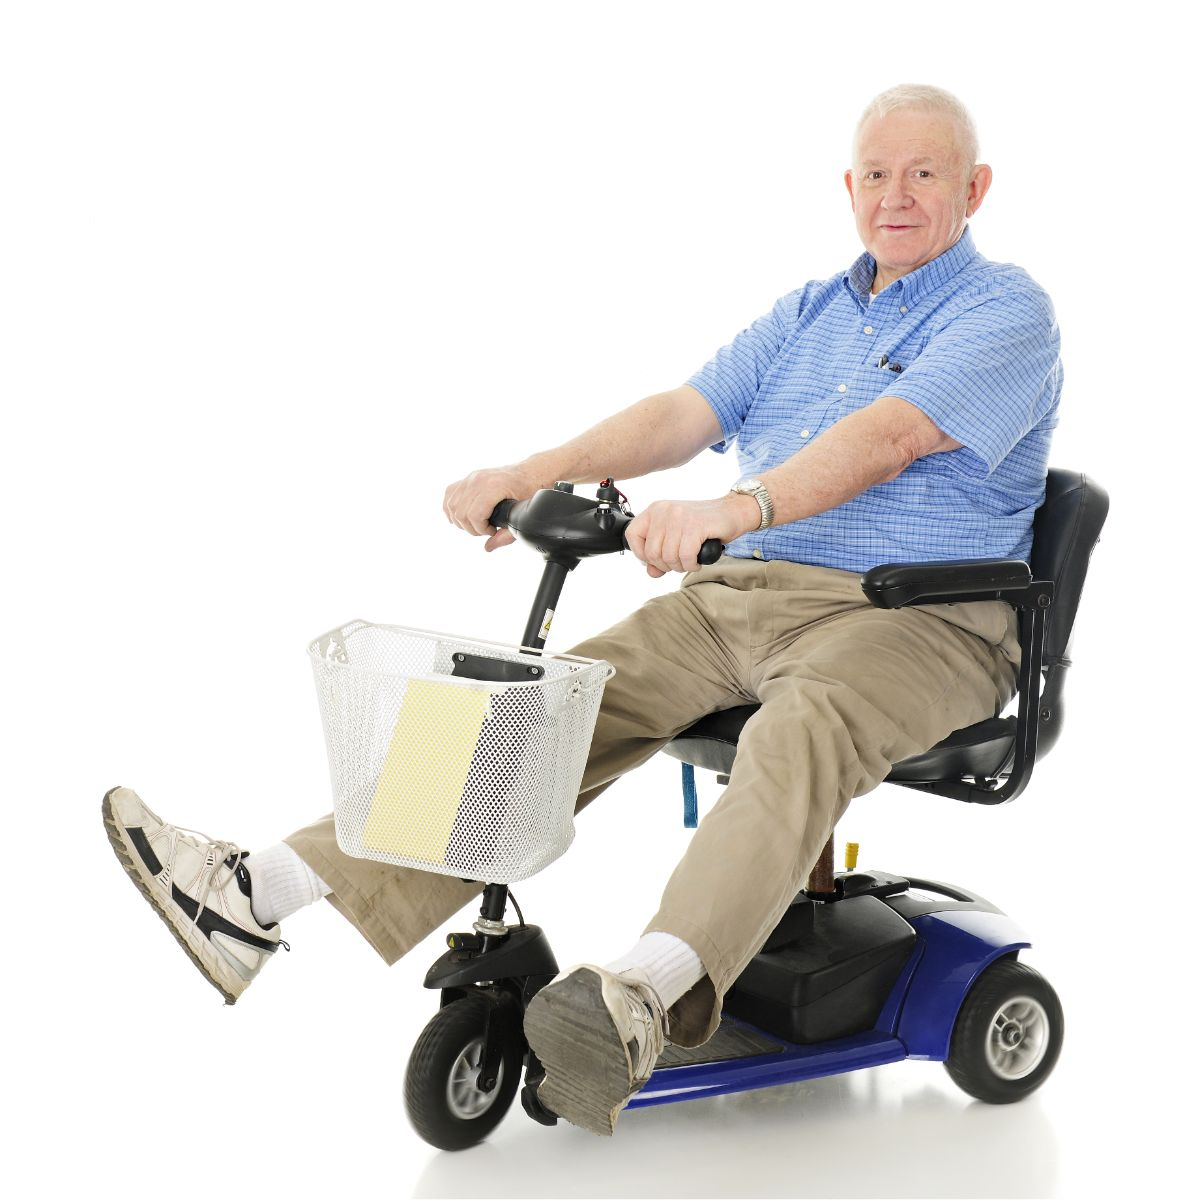 EW 36 Mobility Scooter Reviews